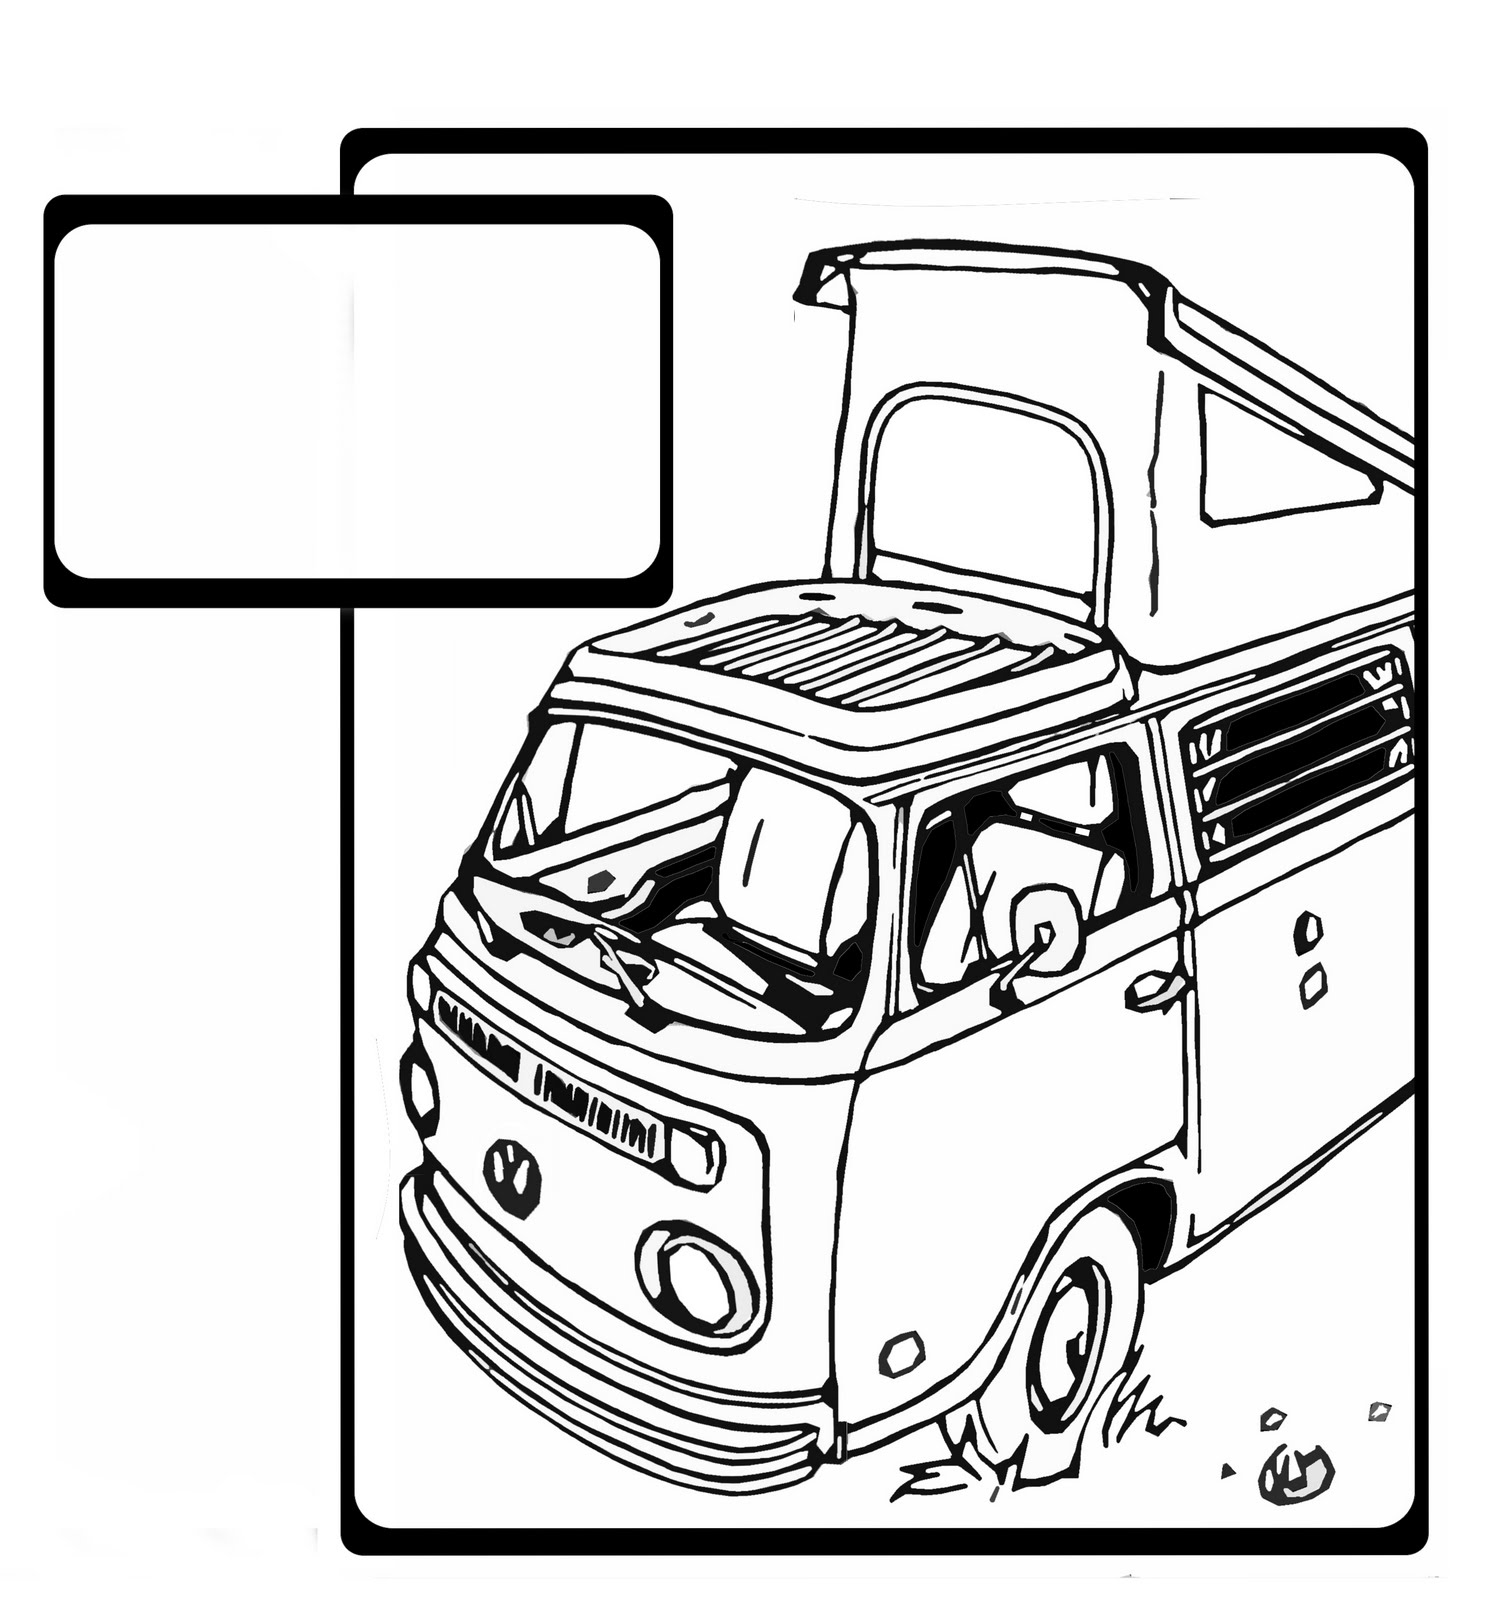 drawing of bus vw bus line drawing at paintingvalleycom explore of drawing bus